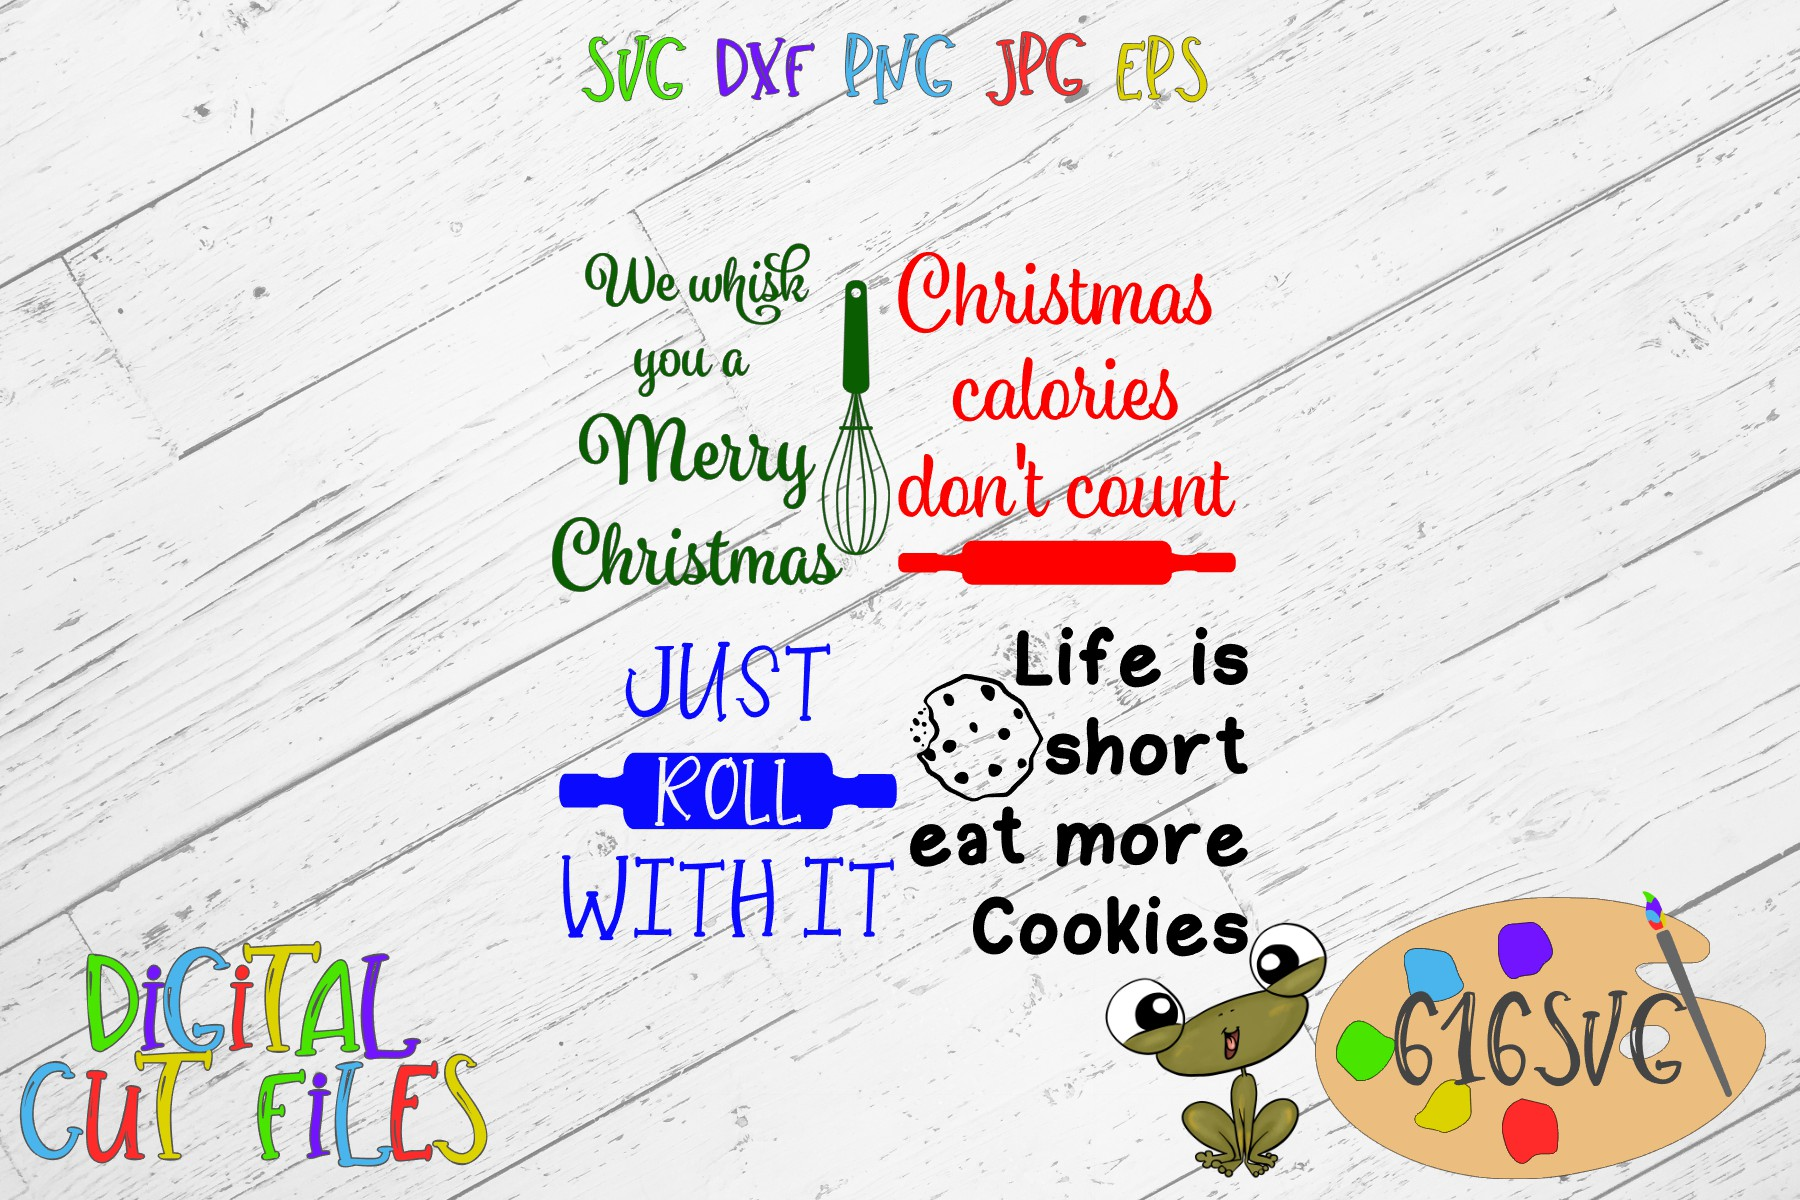 Download Free Christmas Potholder Designs Svg Graphic By 616svg Creative Fabrica for Cricut Explore, Silhouette and other cutting machines.